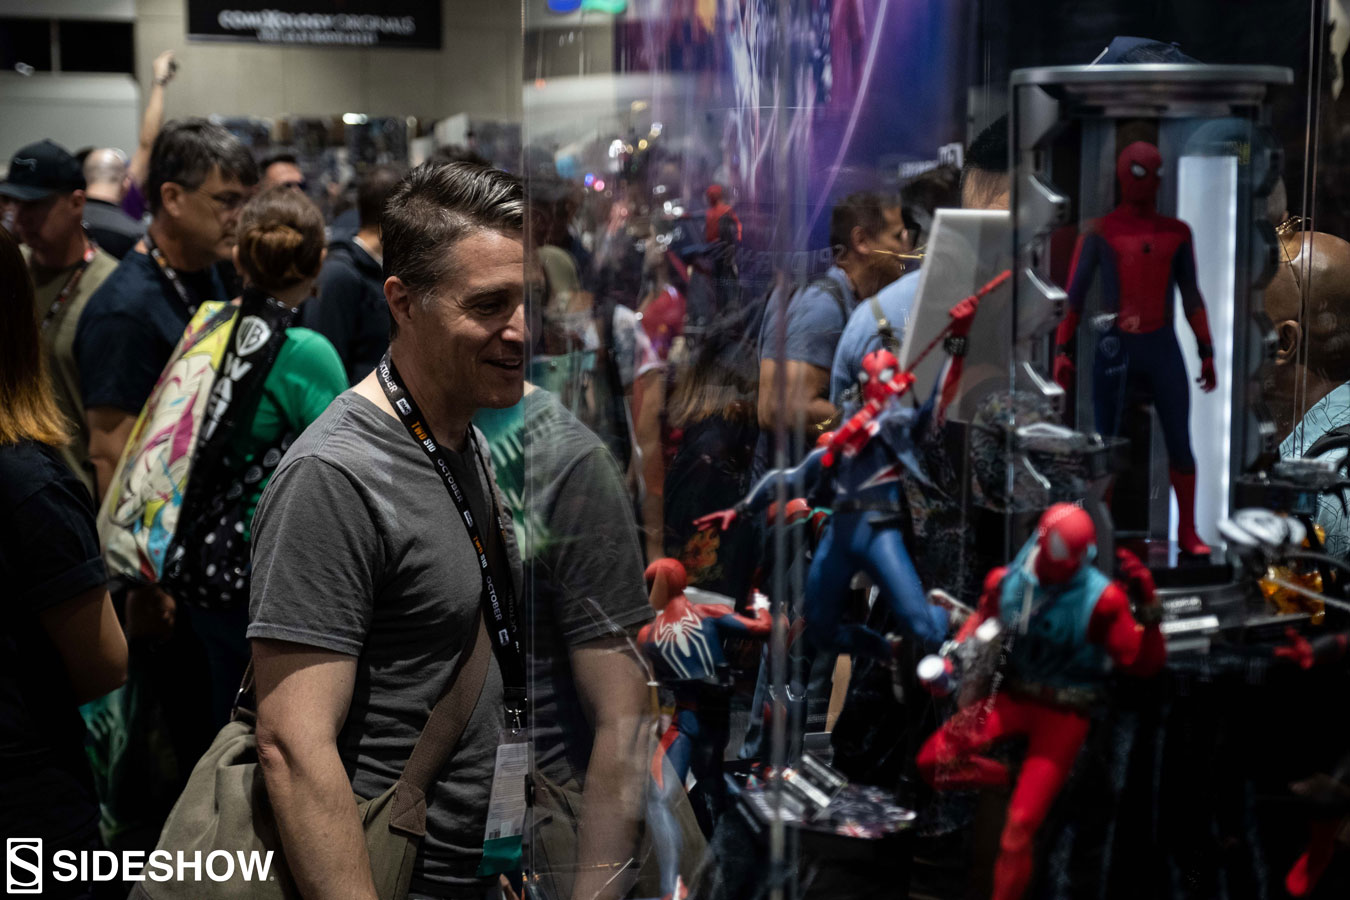 Spider-Man Himself Joins Sideshow at San Diego Comic-Con